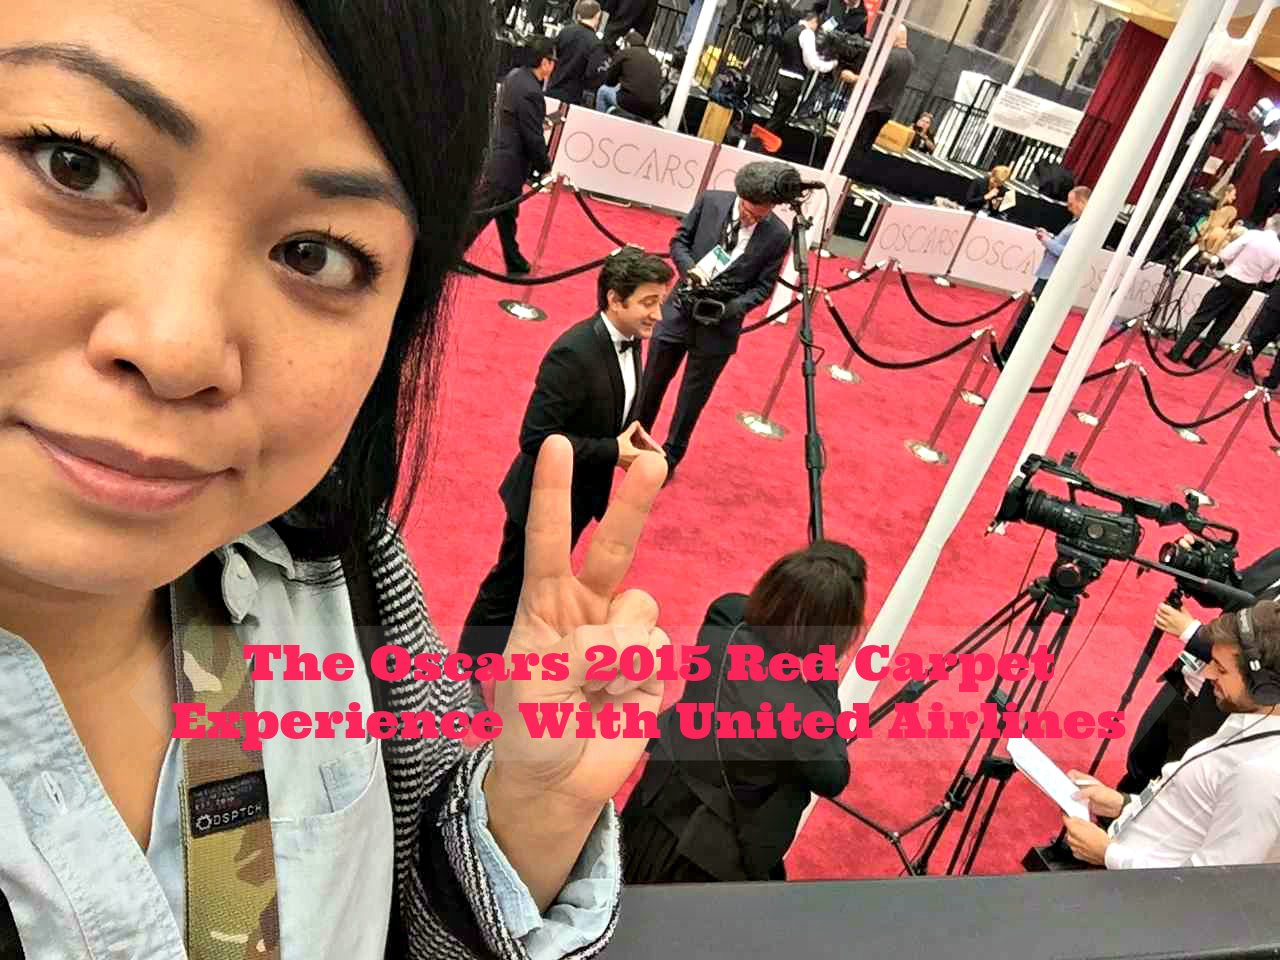 The Oscars 2015 Red Carpet Experience With United Airlines